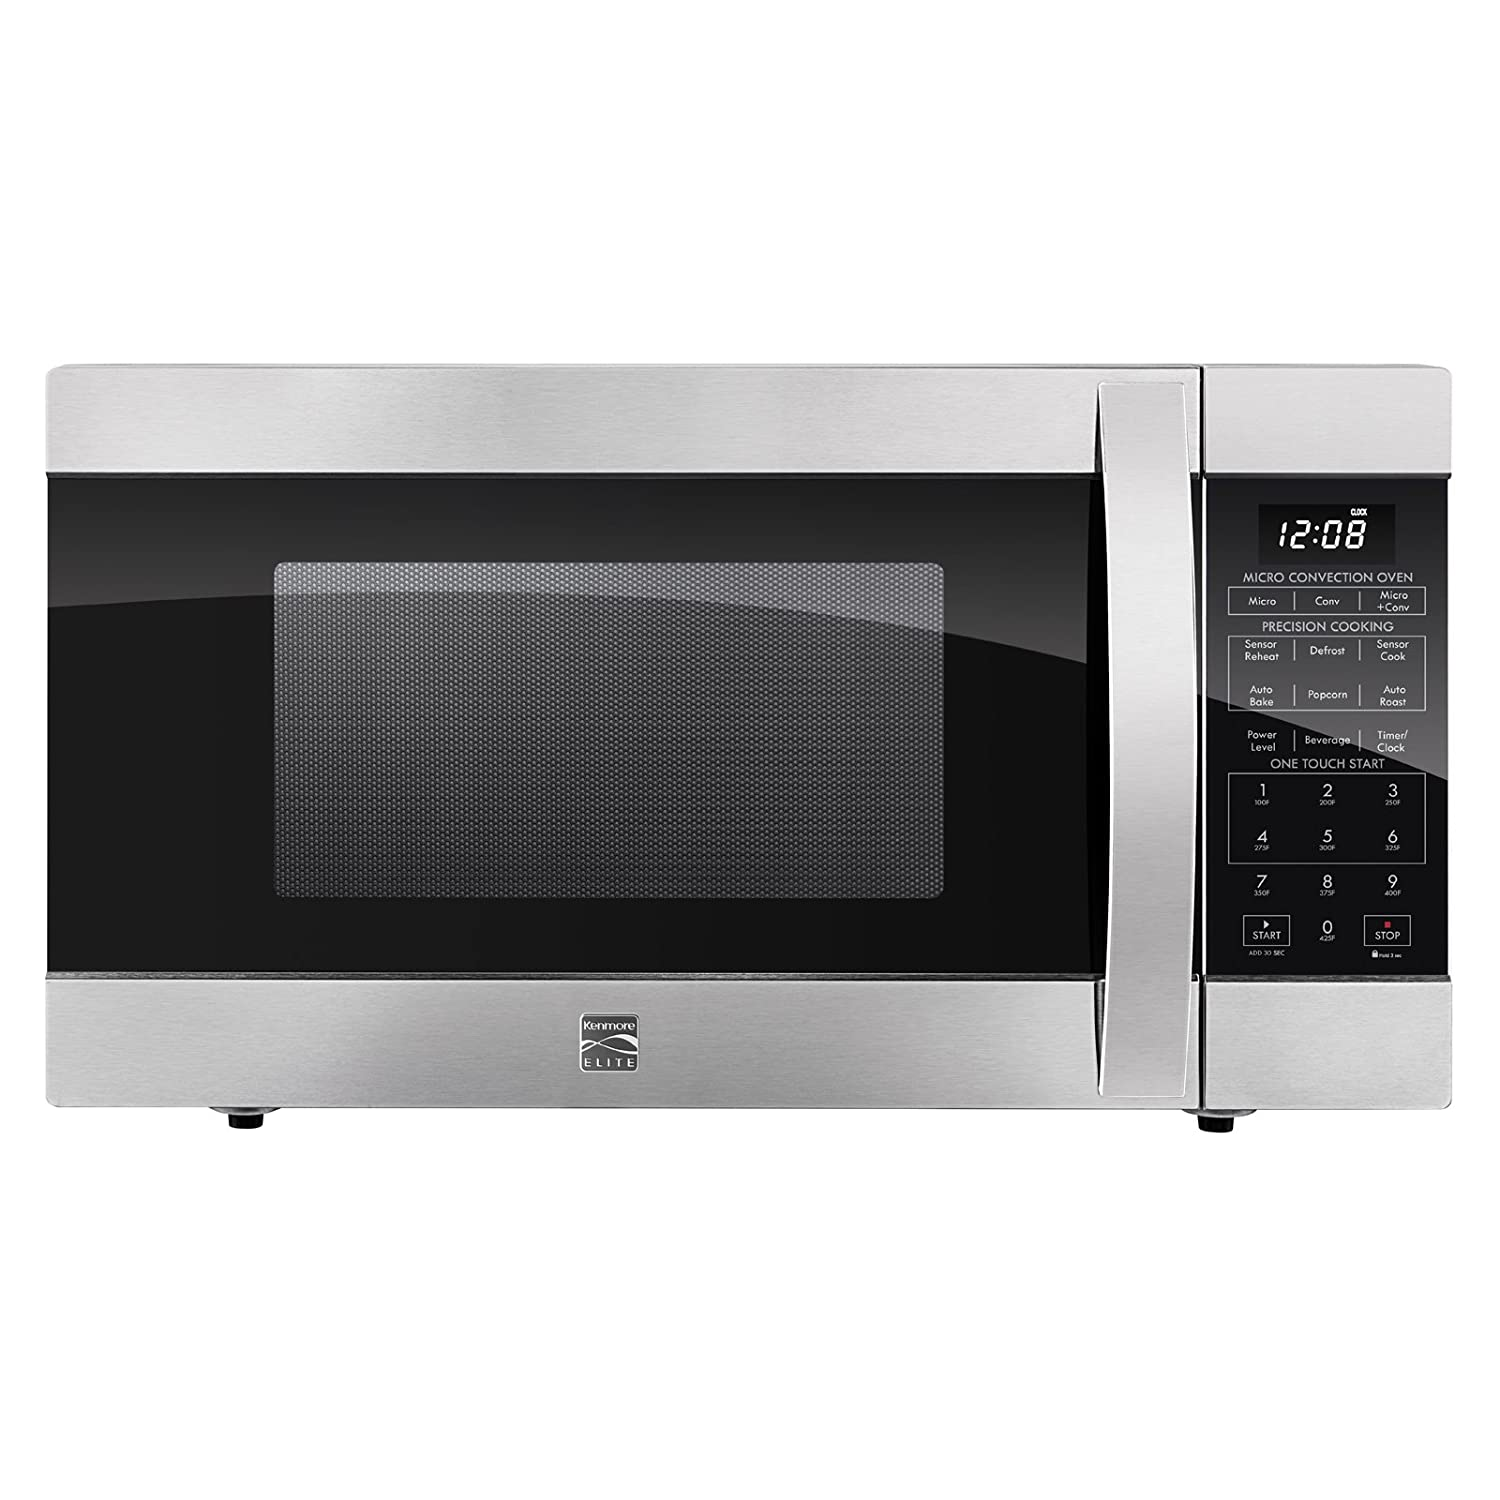 kenmore convection oven. amazon.com: kenmore 1.5 cu ft convection microwave oven combo 77603: kitchen \u0026 dining .